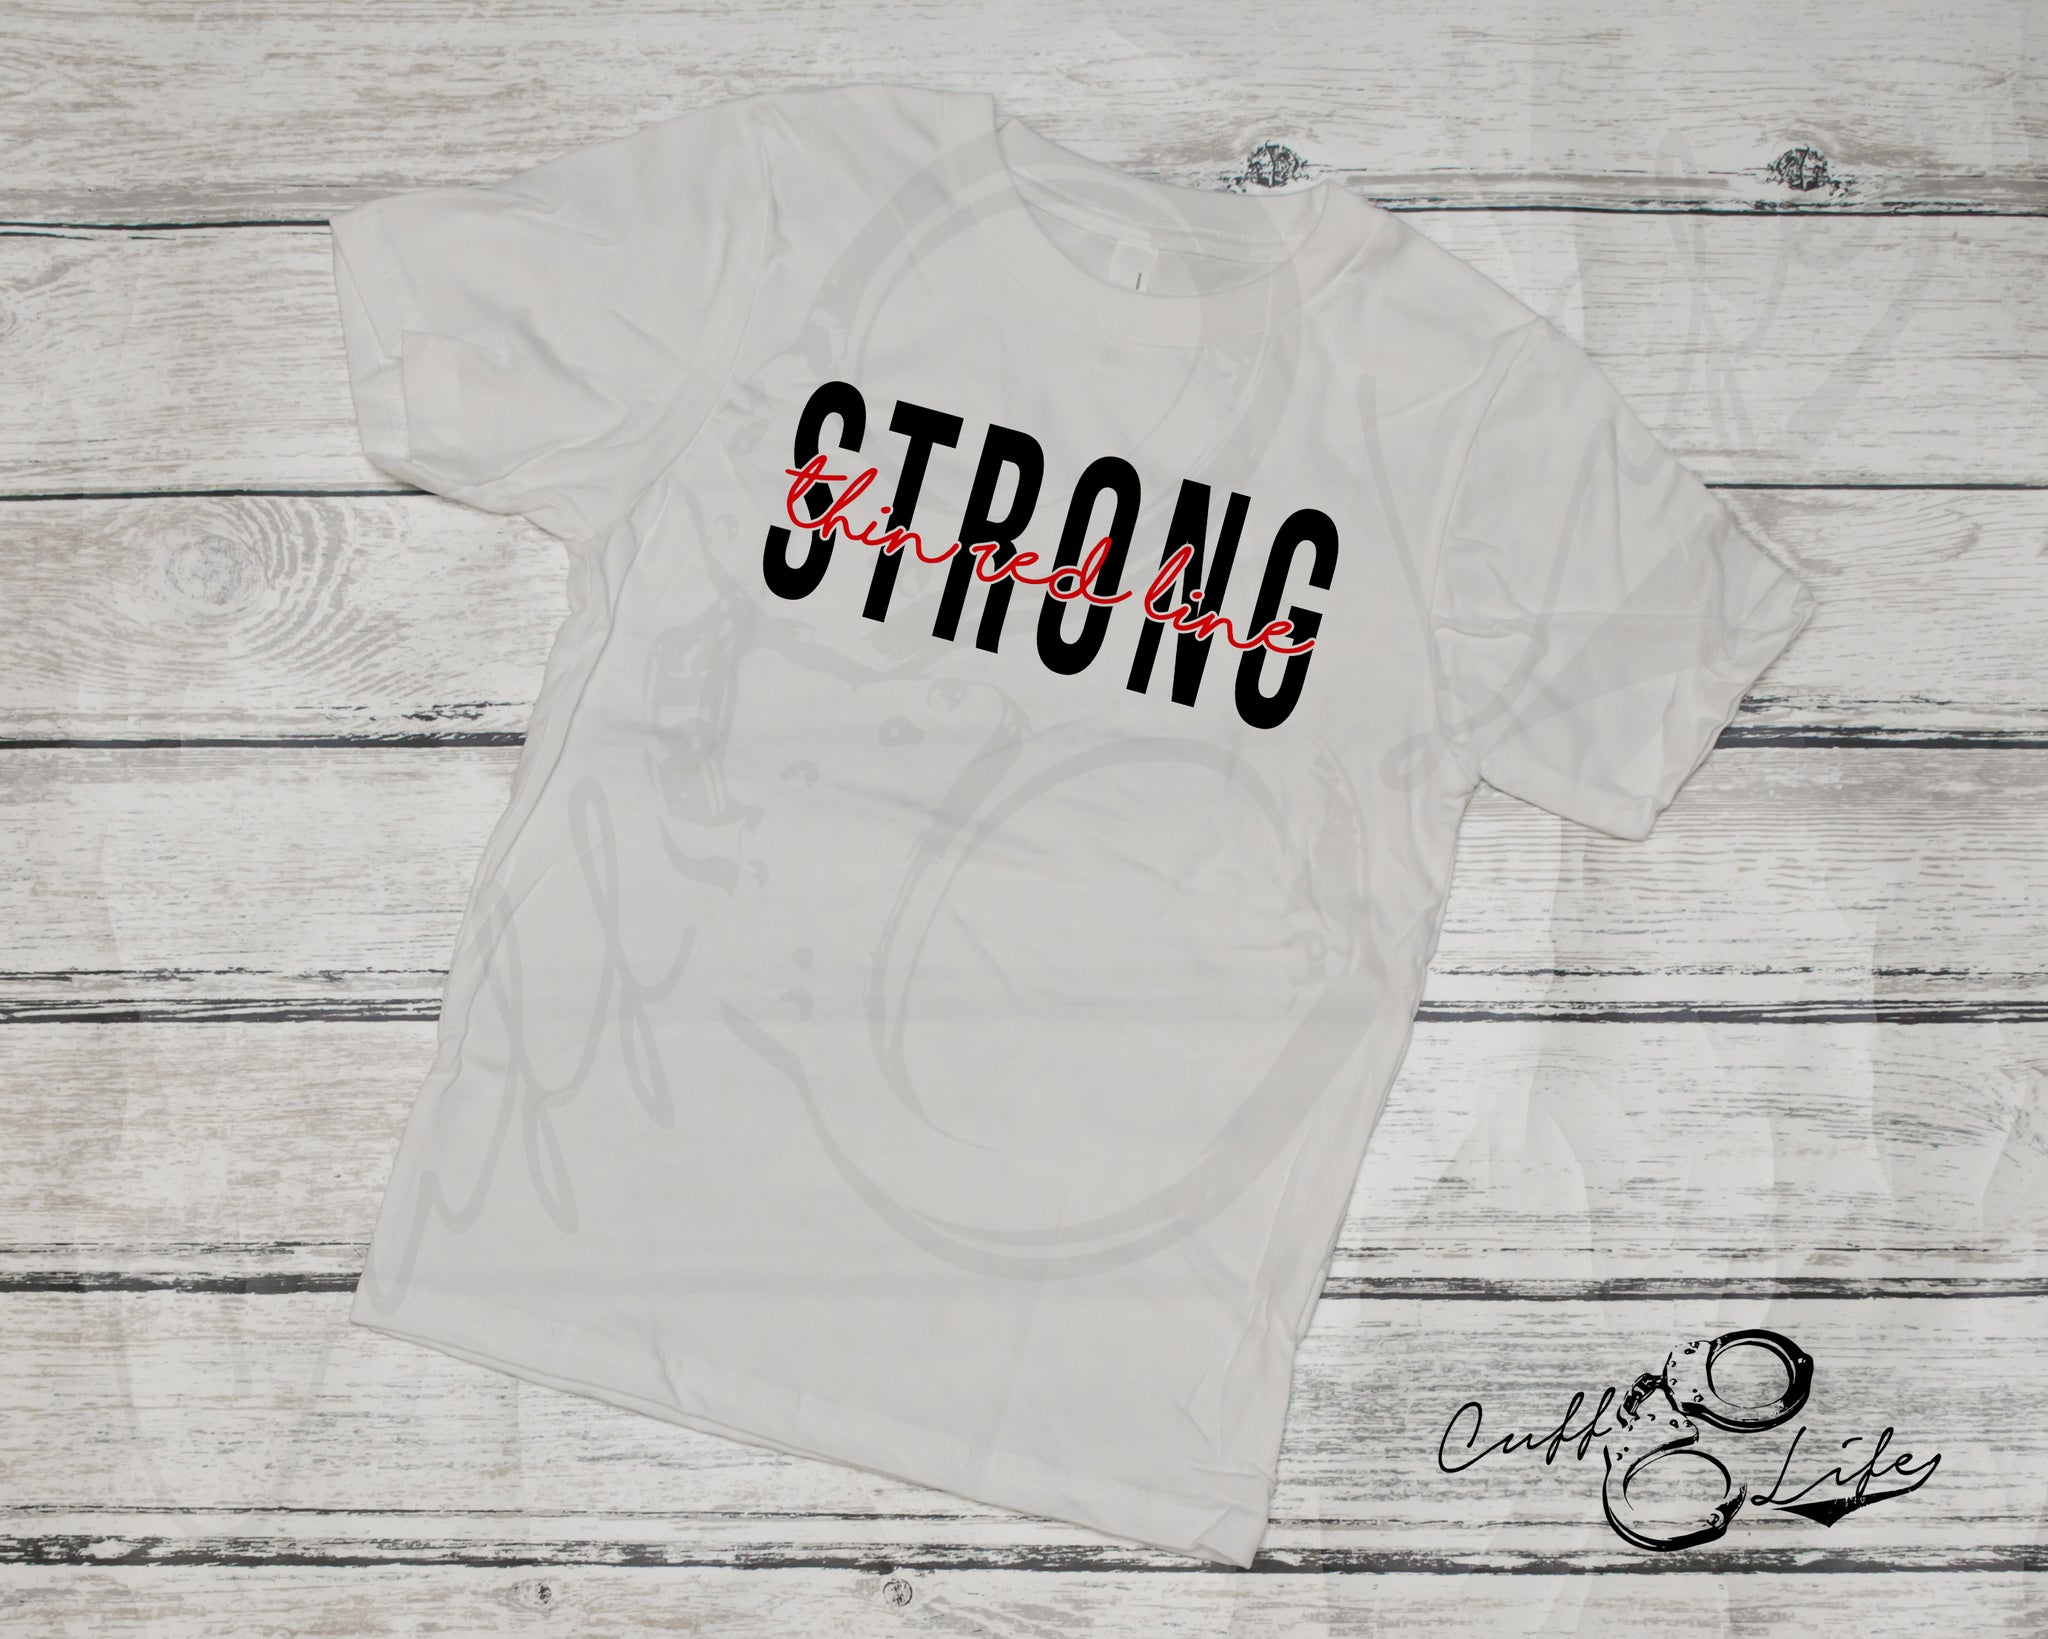 Thin Red Line STRONG - Toddler/Youth T-Shirt